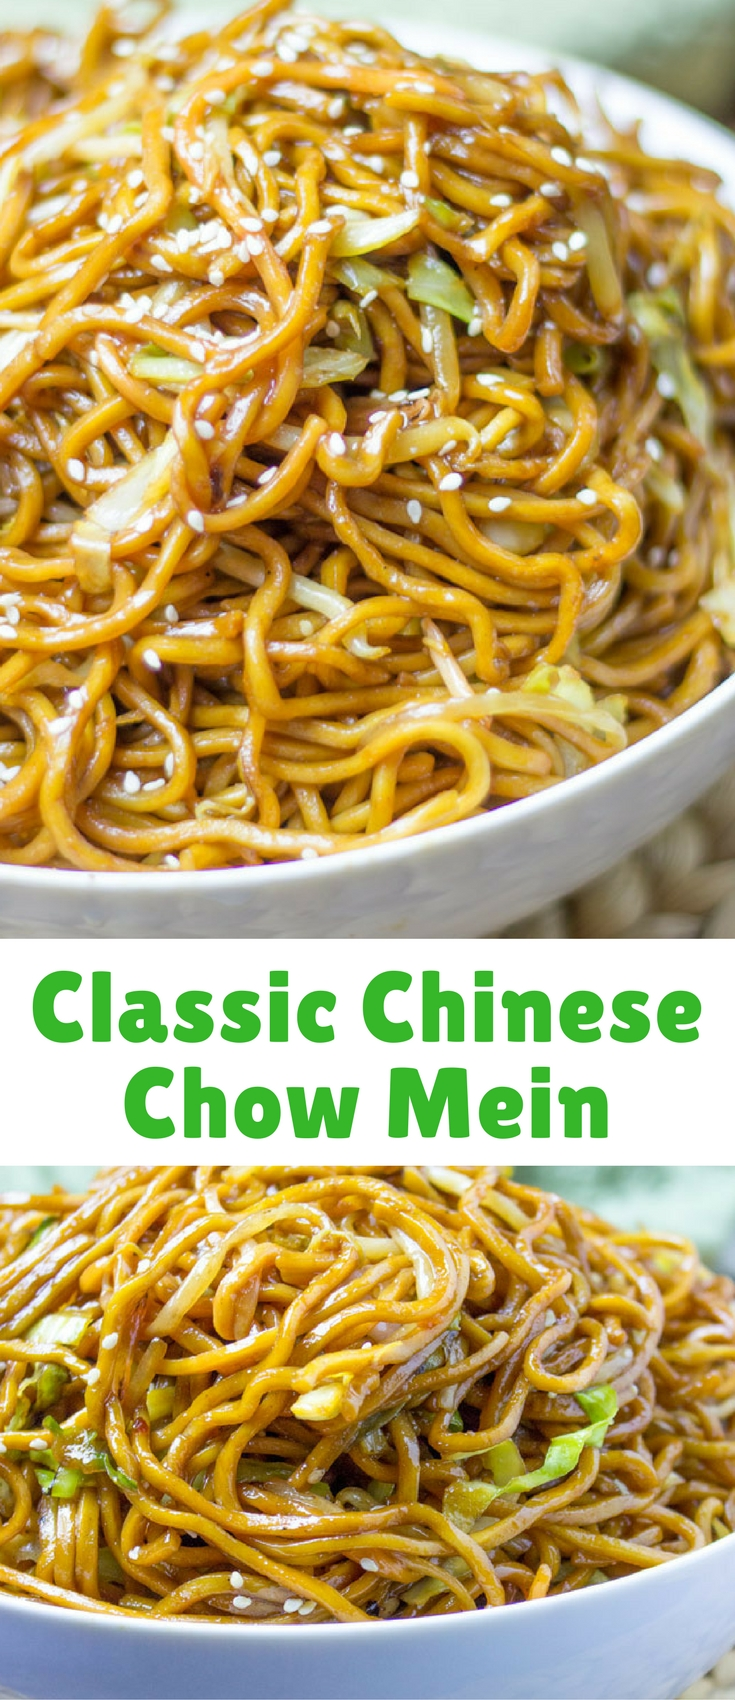 CLASSIC CHINESE CHOW MEIN WITH AUTHENTIC INGREDIENTS AND EASY INGREDIENT SWAPS TO MAKE THIS A PANTRY MEAL IN A PINCH! Read more at: Classic Chinese Chow Mein http://dinnerthendessert.com/classic-chinese-chow-mein/